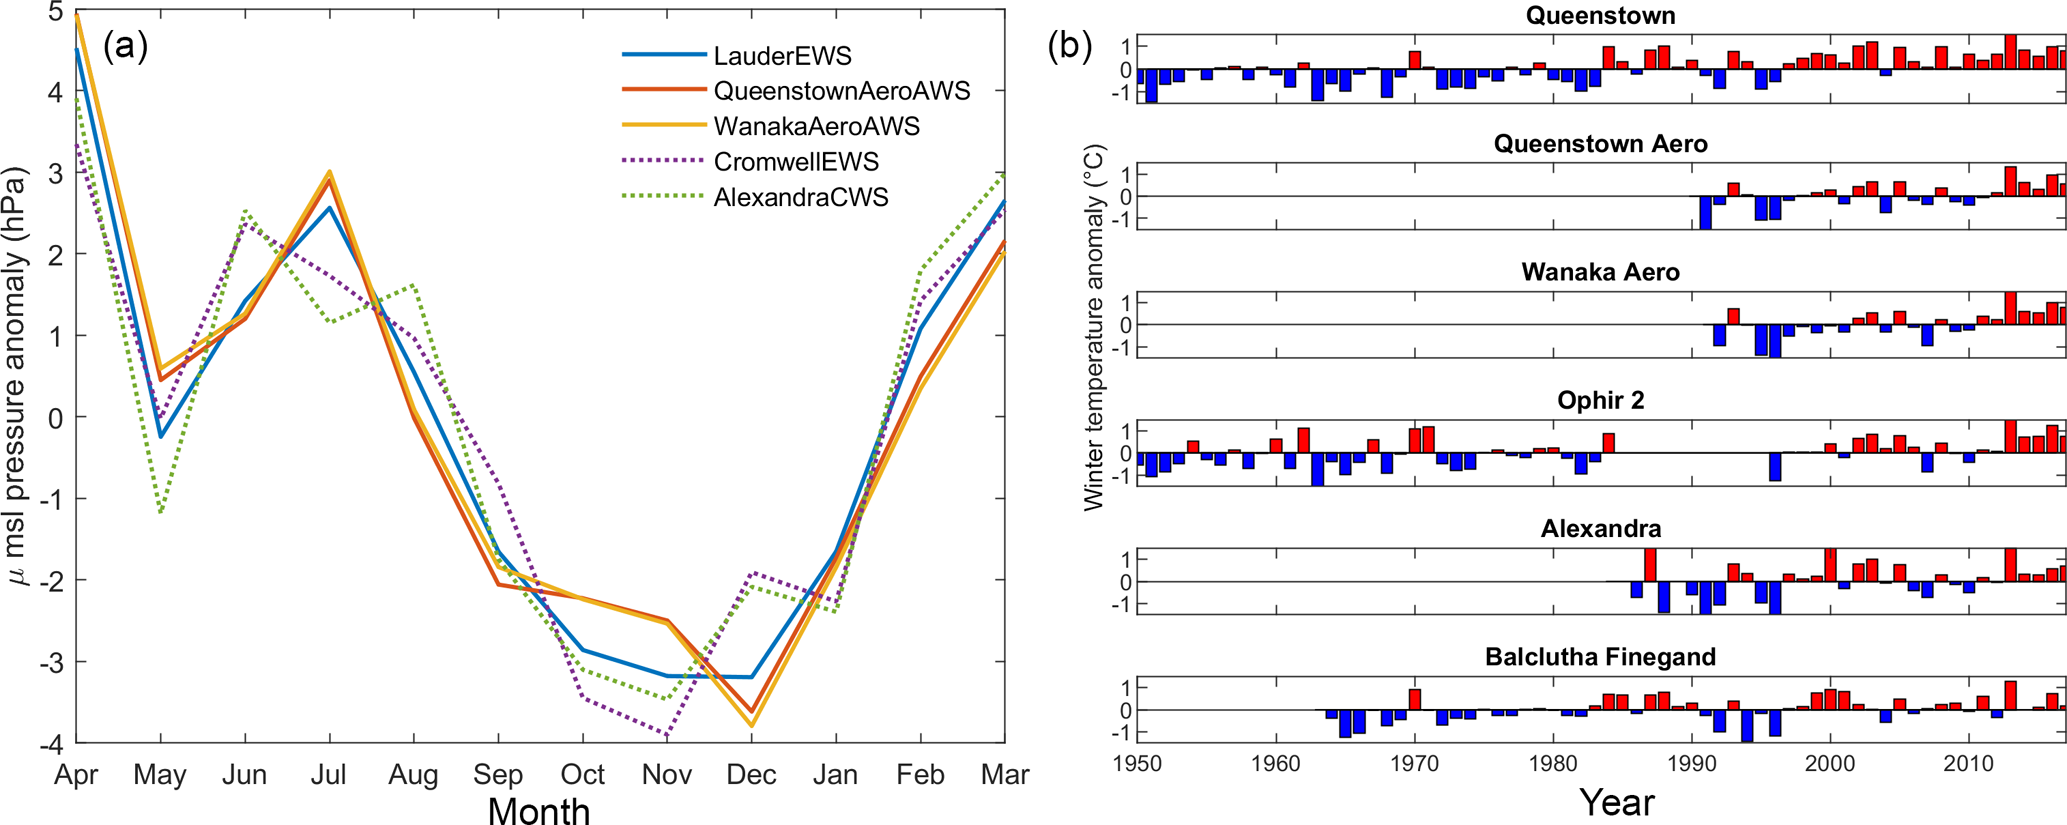 HESS - Characterising spatio-temporal variability in